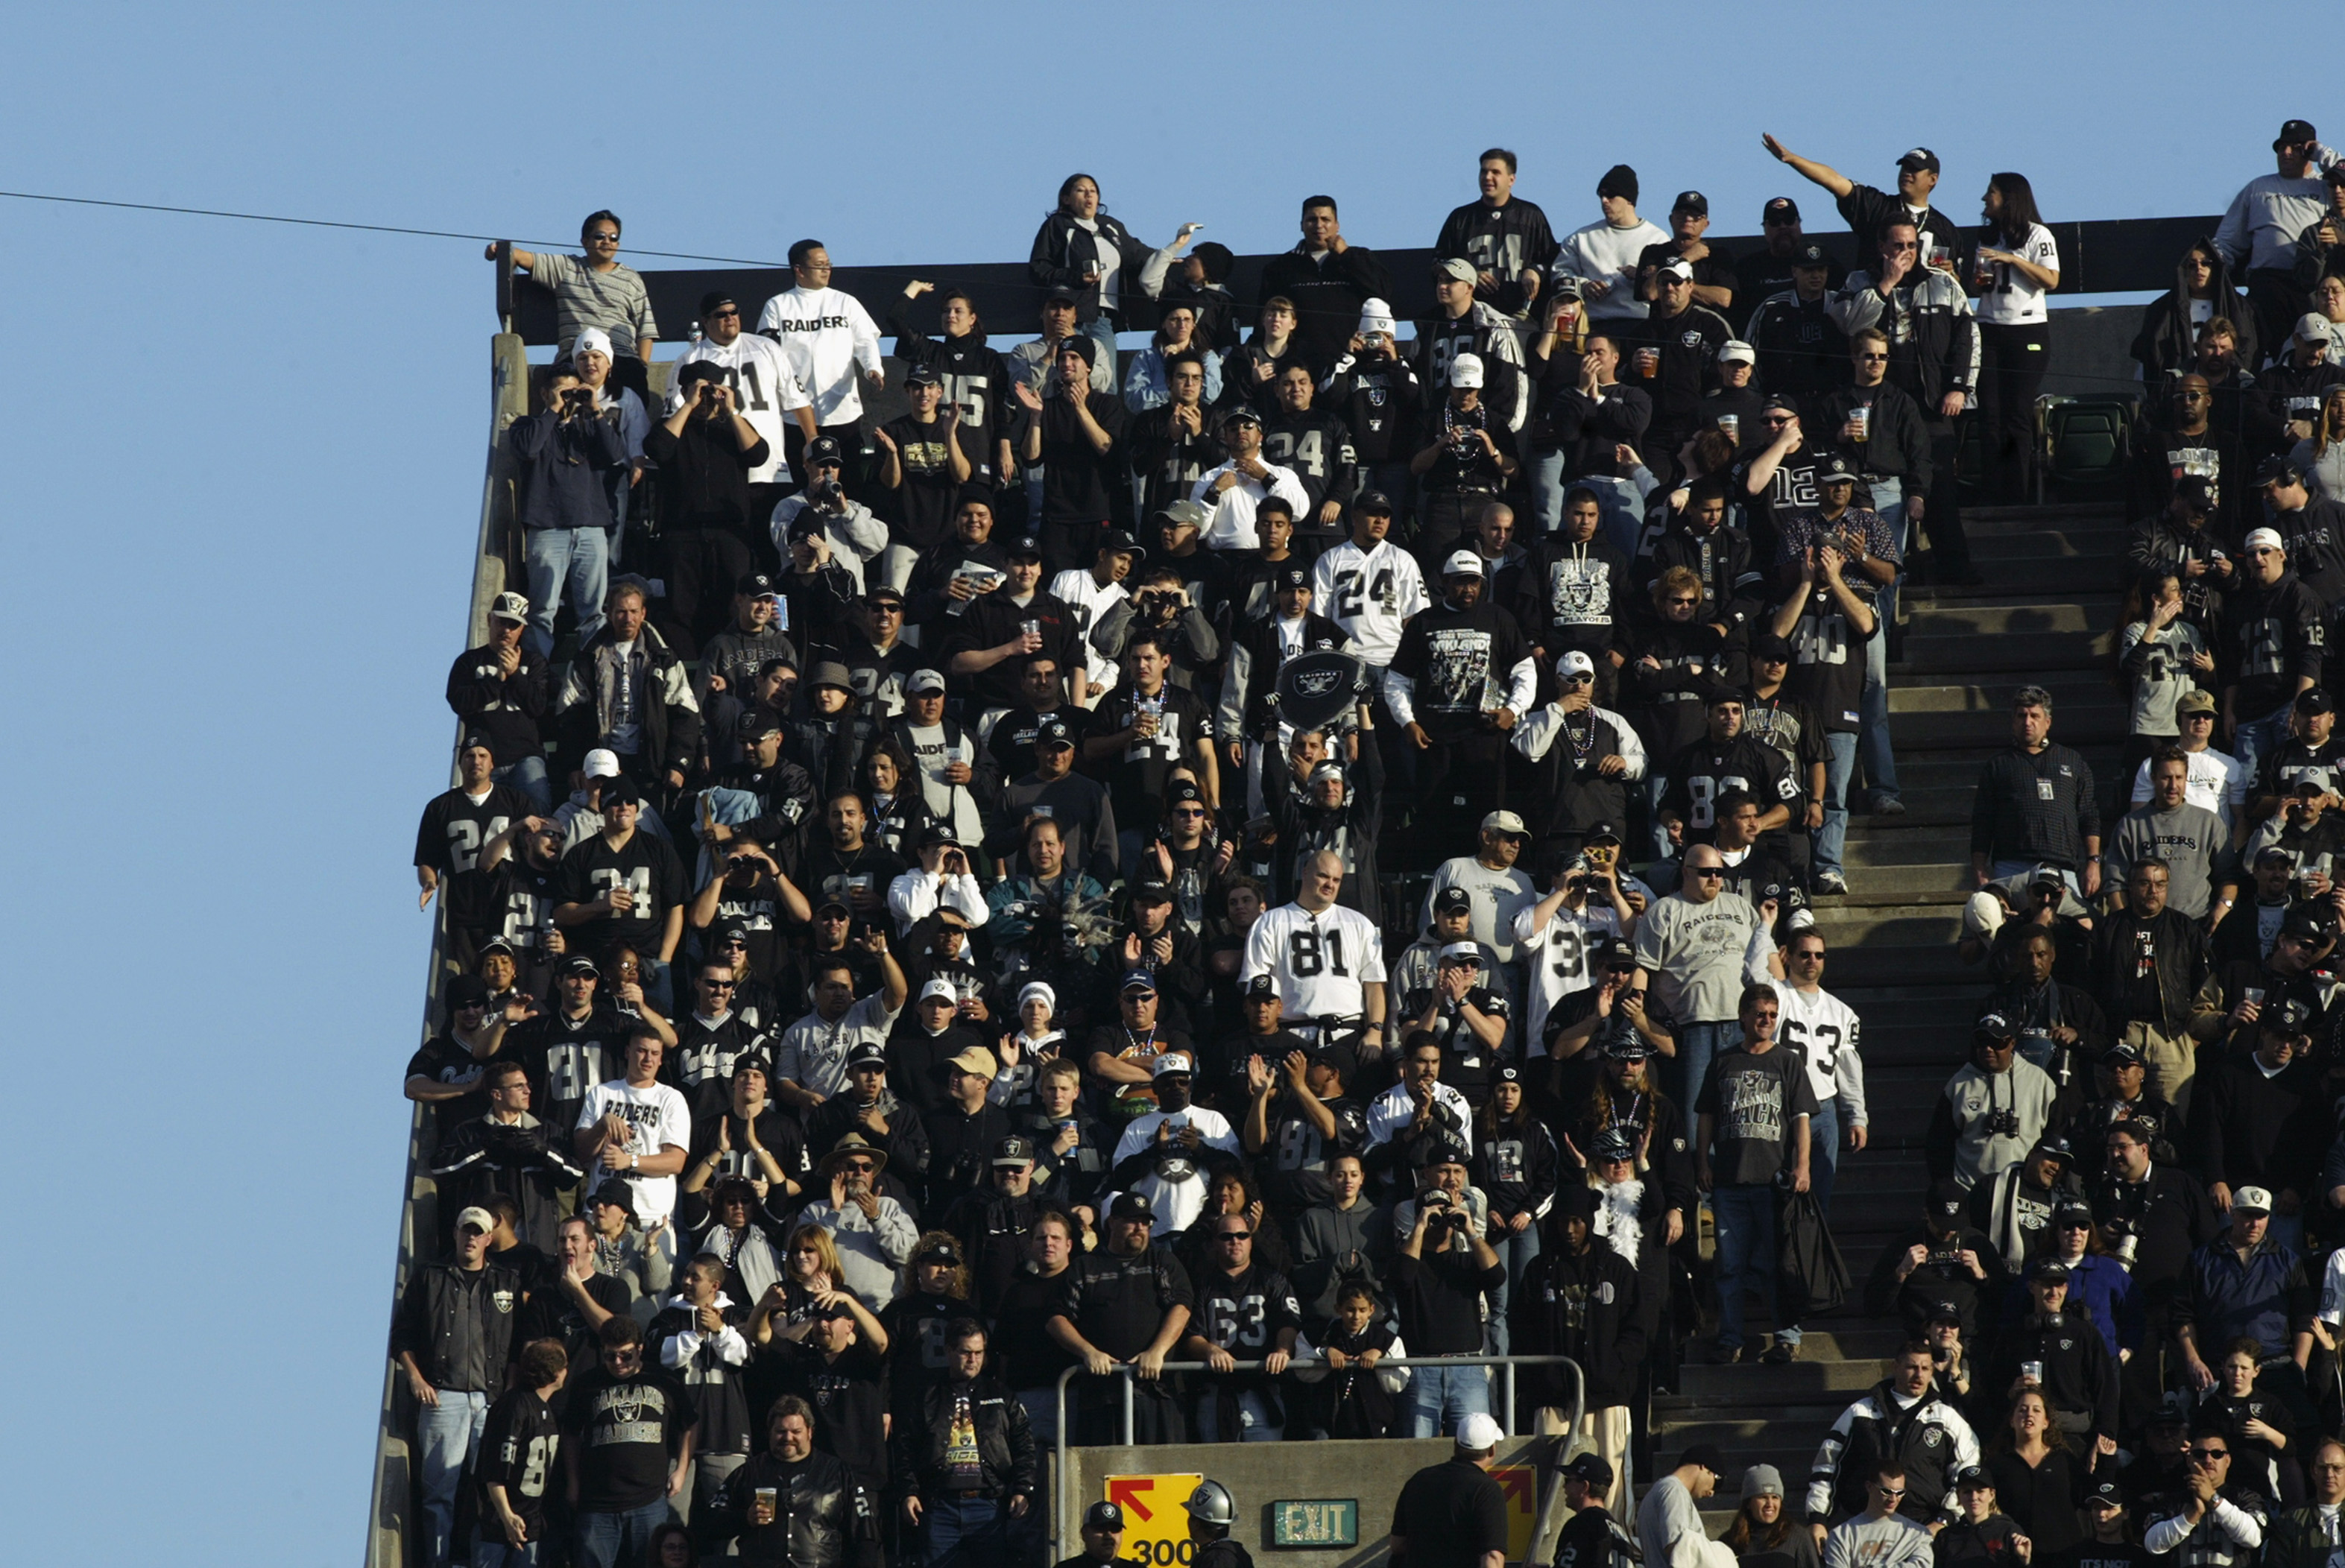 OAKLAND, CA - JANUARY 19:  Fans of the Oakland Raiders fill even the 'nose-bleed' seats during the AFC Championship game against the Tennessee Titans at Network Associates Coliseum on January 19, 2003 in Oakland, California.  The Raiders defeated the Tita